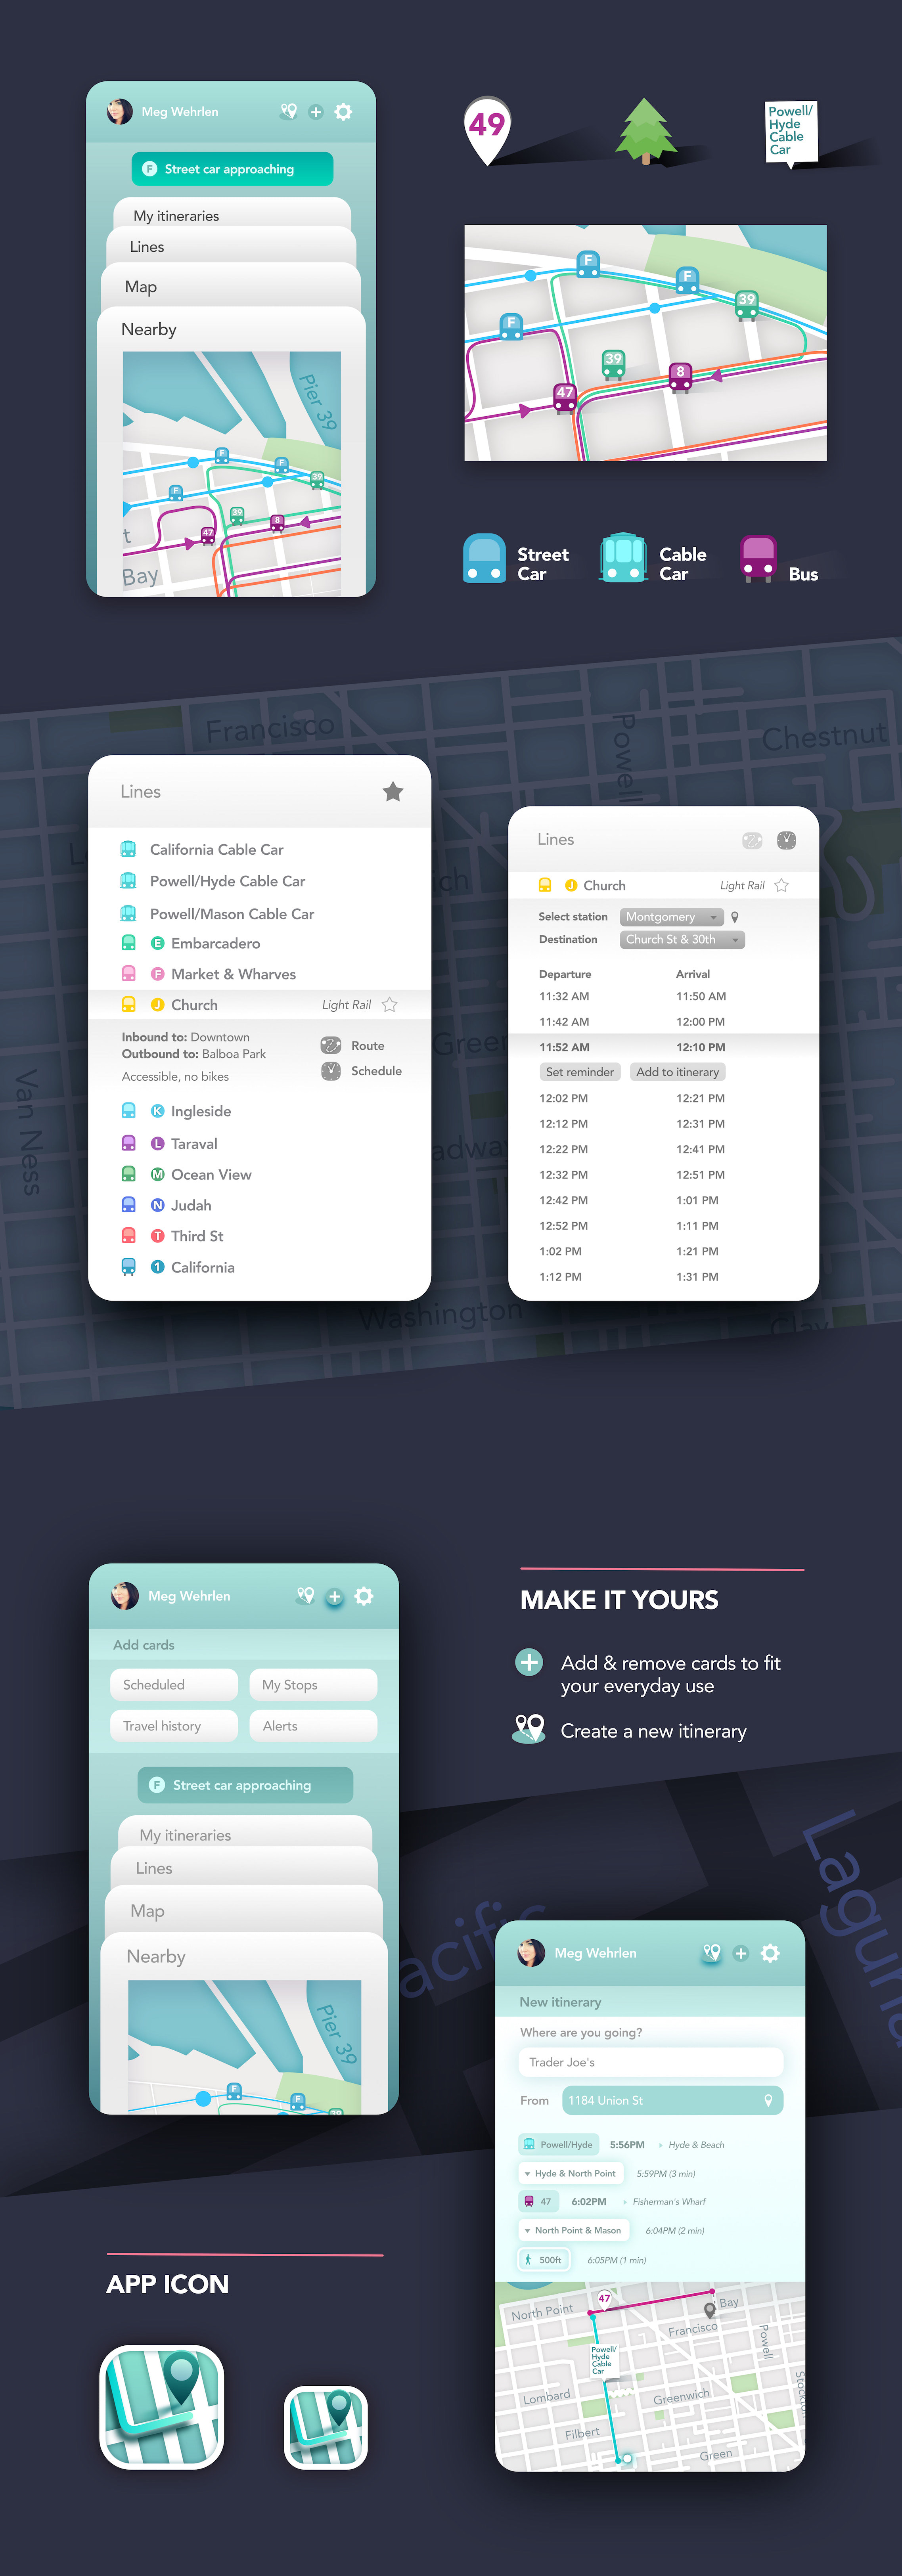 San Francisco transportation map design by Meg Wehrlen | UIUX, App Design